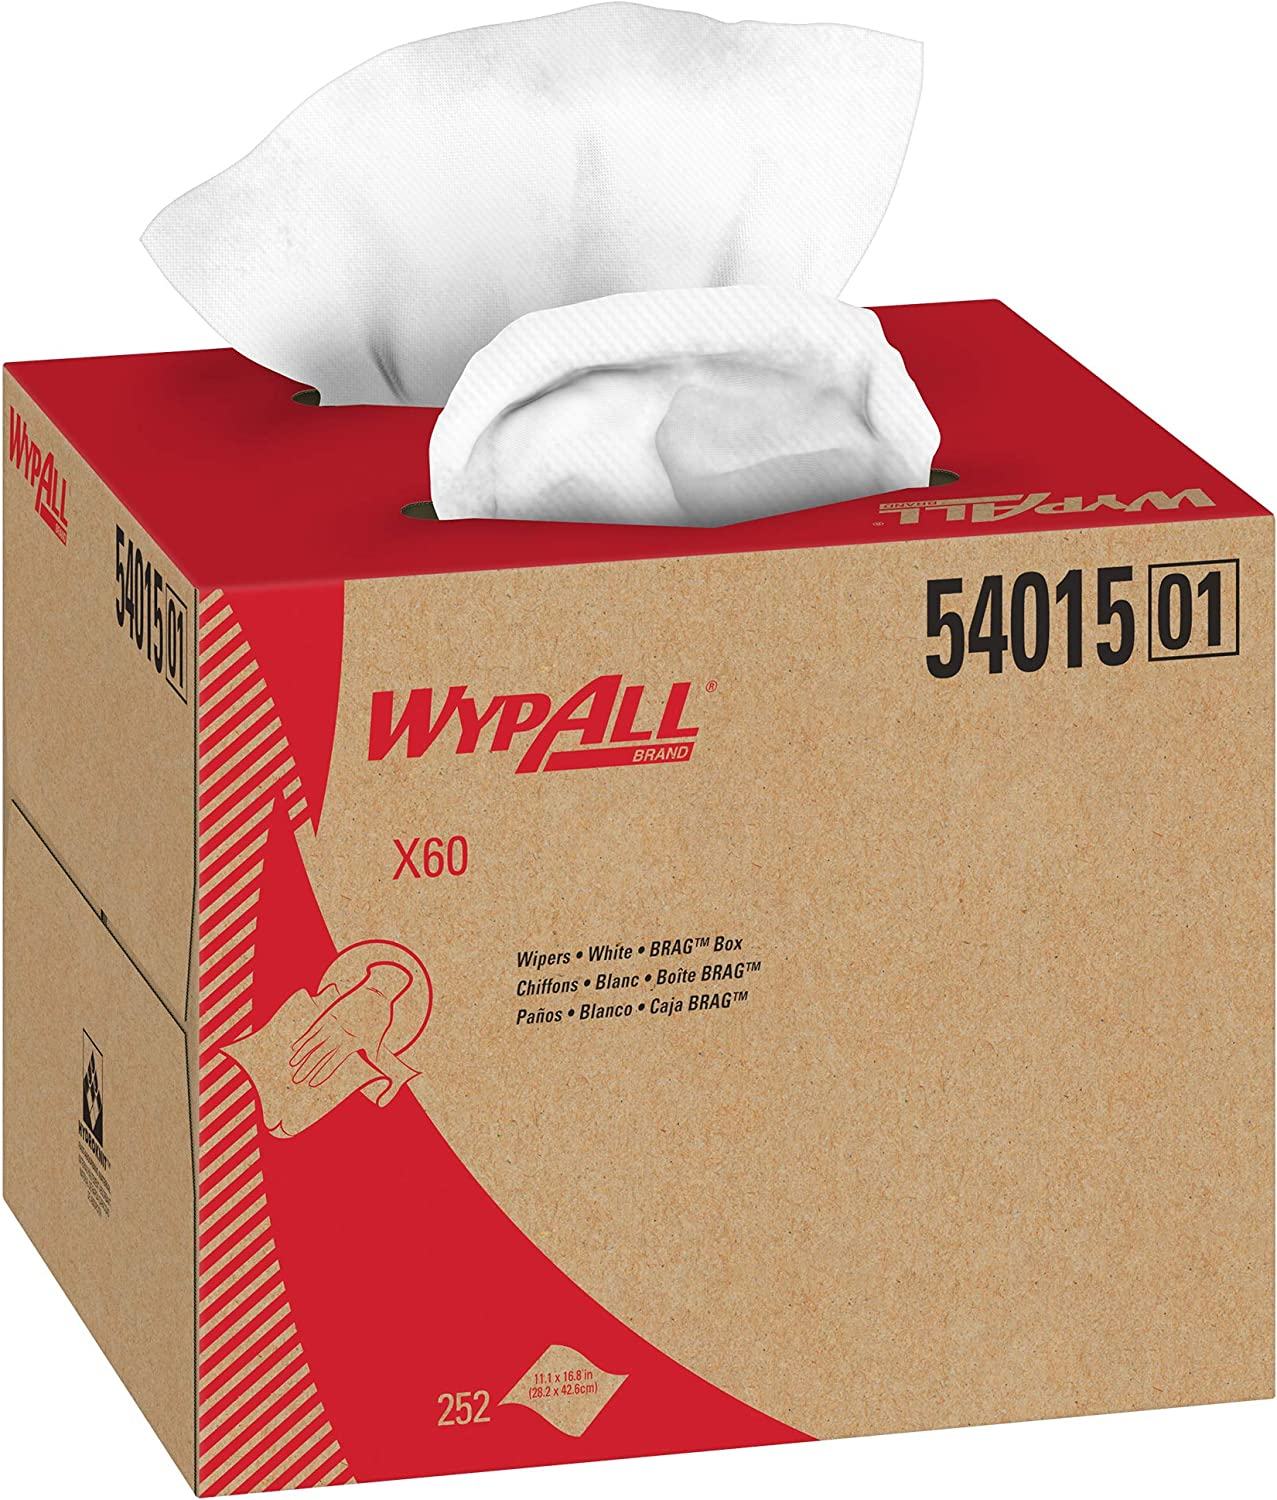 Wypall X60 Reusable Cloths 54015 in 70% OFF Outlet Sheet Brag White 40% OFF Cheap Sale 252 Box